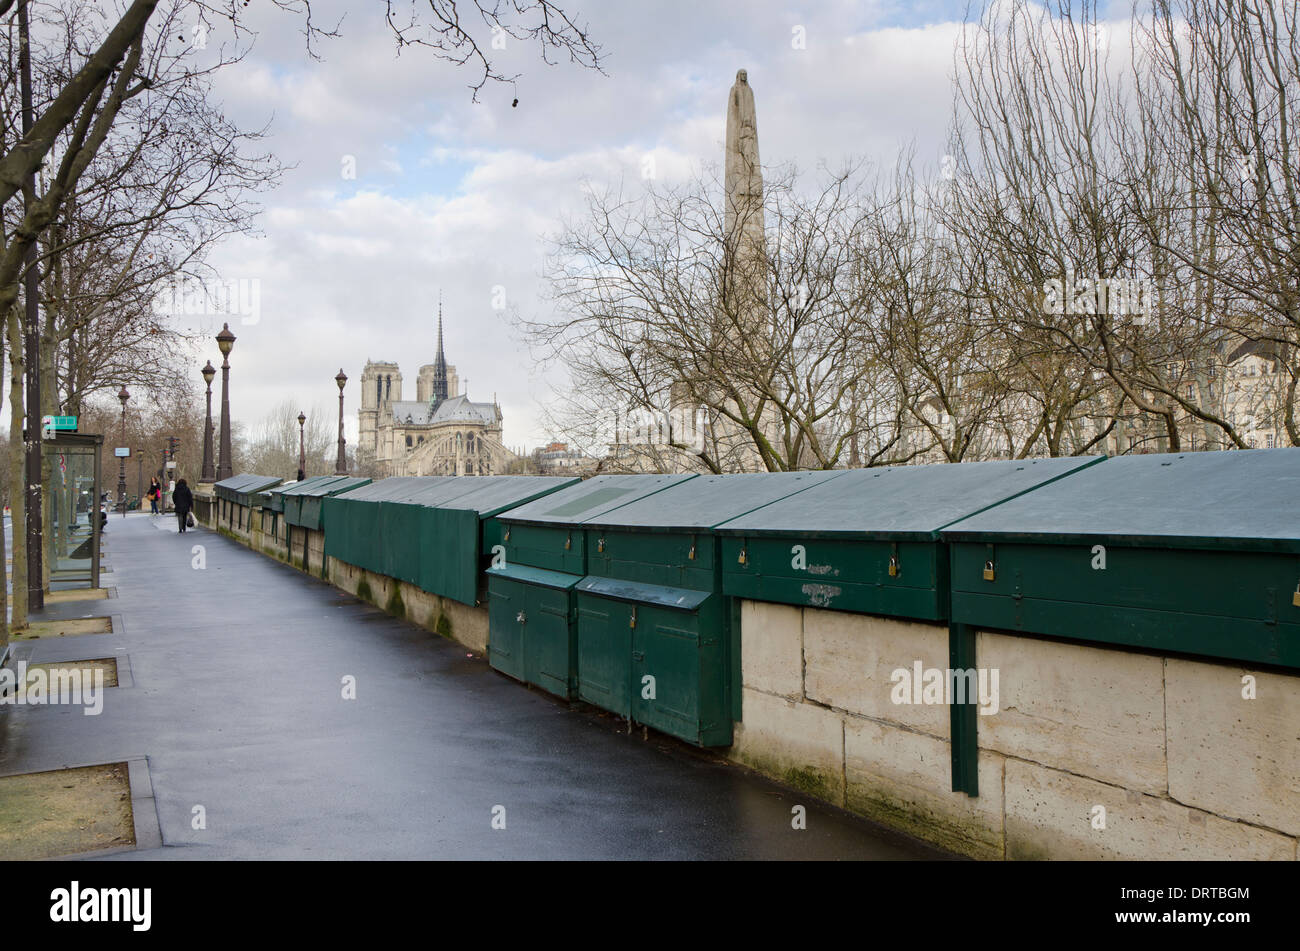 The Bouquinistes, bookseller boxes along the Seine closed due to bad weather. Paris, France. - Stock Image